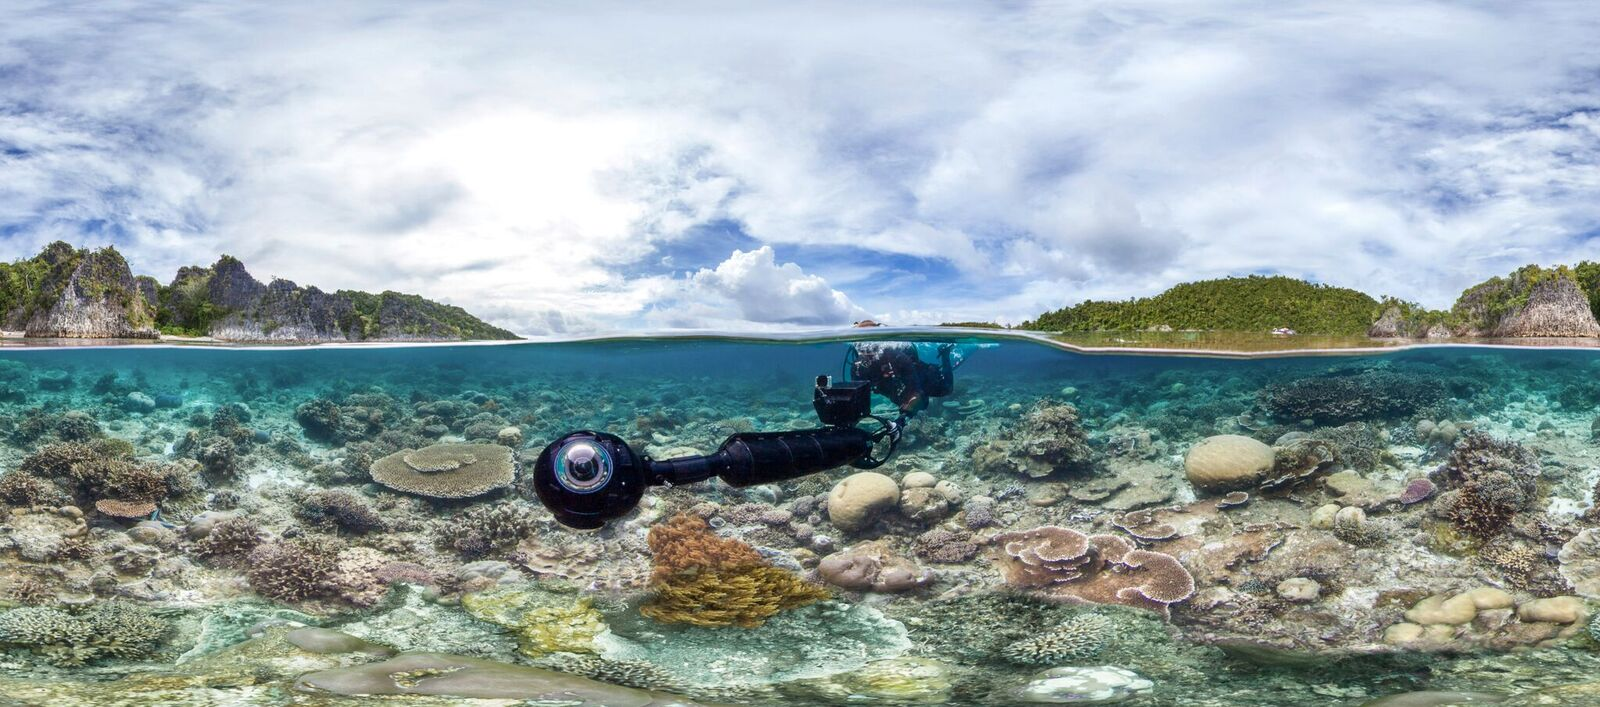 SVII in Coral Triangle - Photo by XL Catlin Seaview Survey - The Ocean Agency - Aaron Spence_preview.jpeg